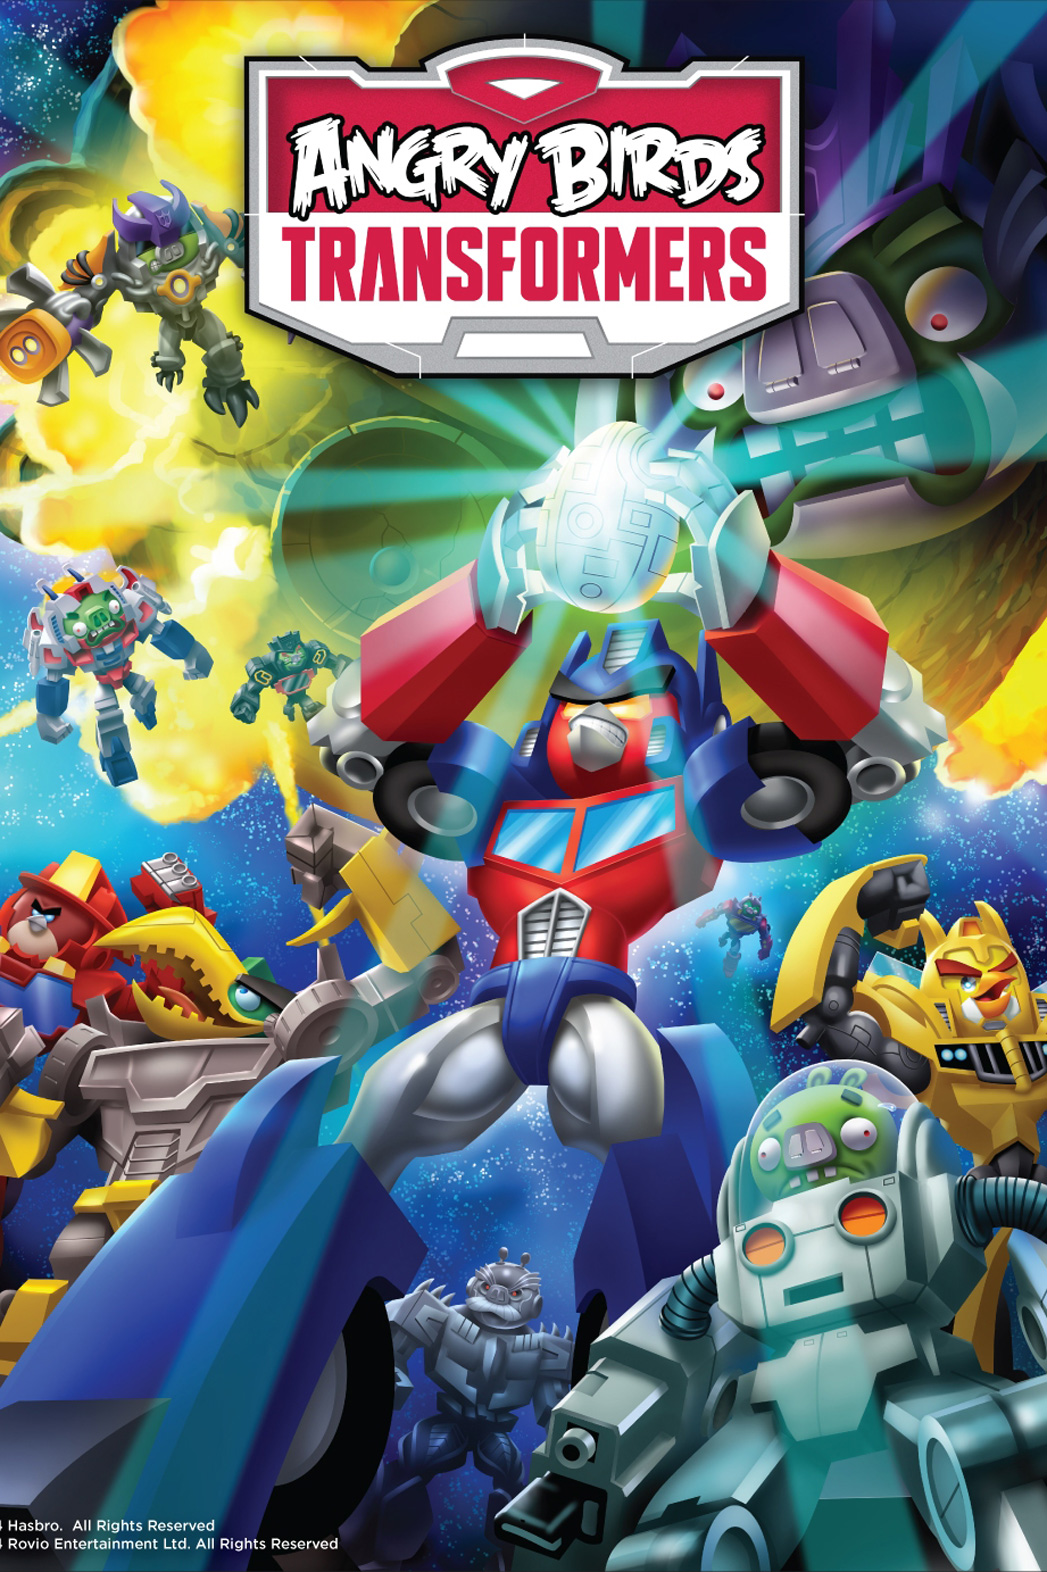 Angry Birds Transformers Poster - P 2014